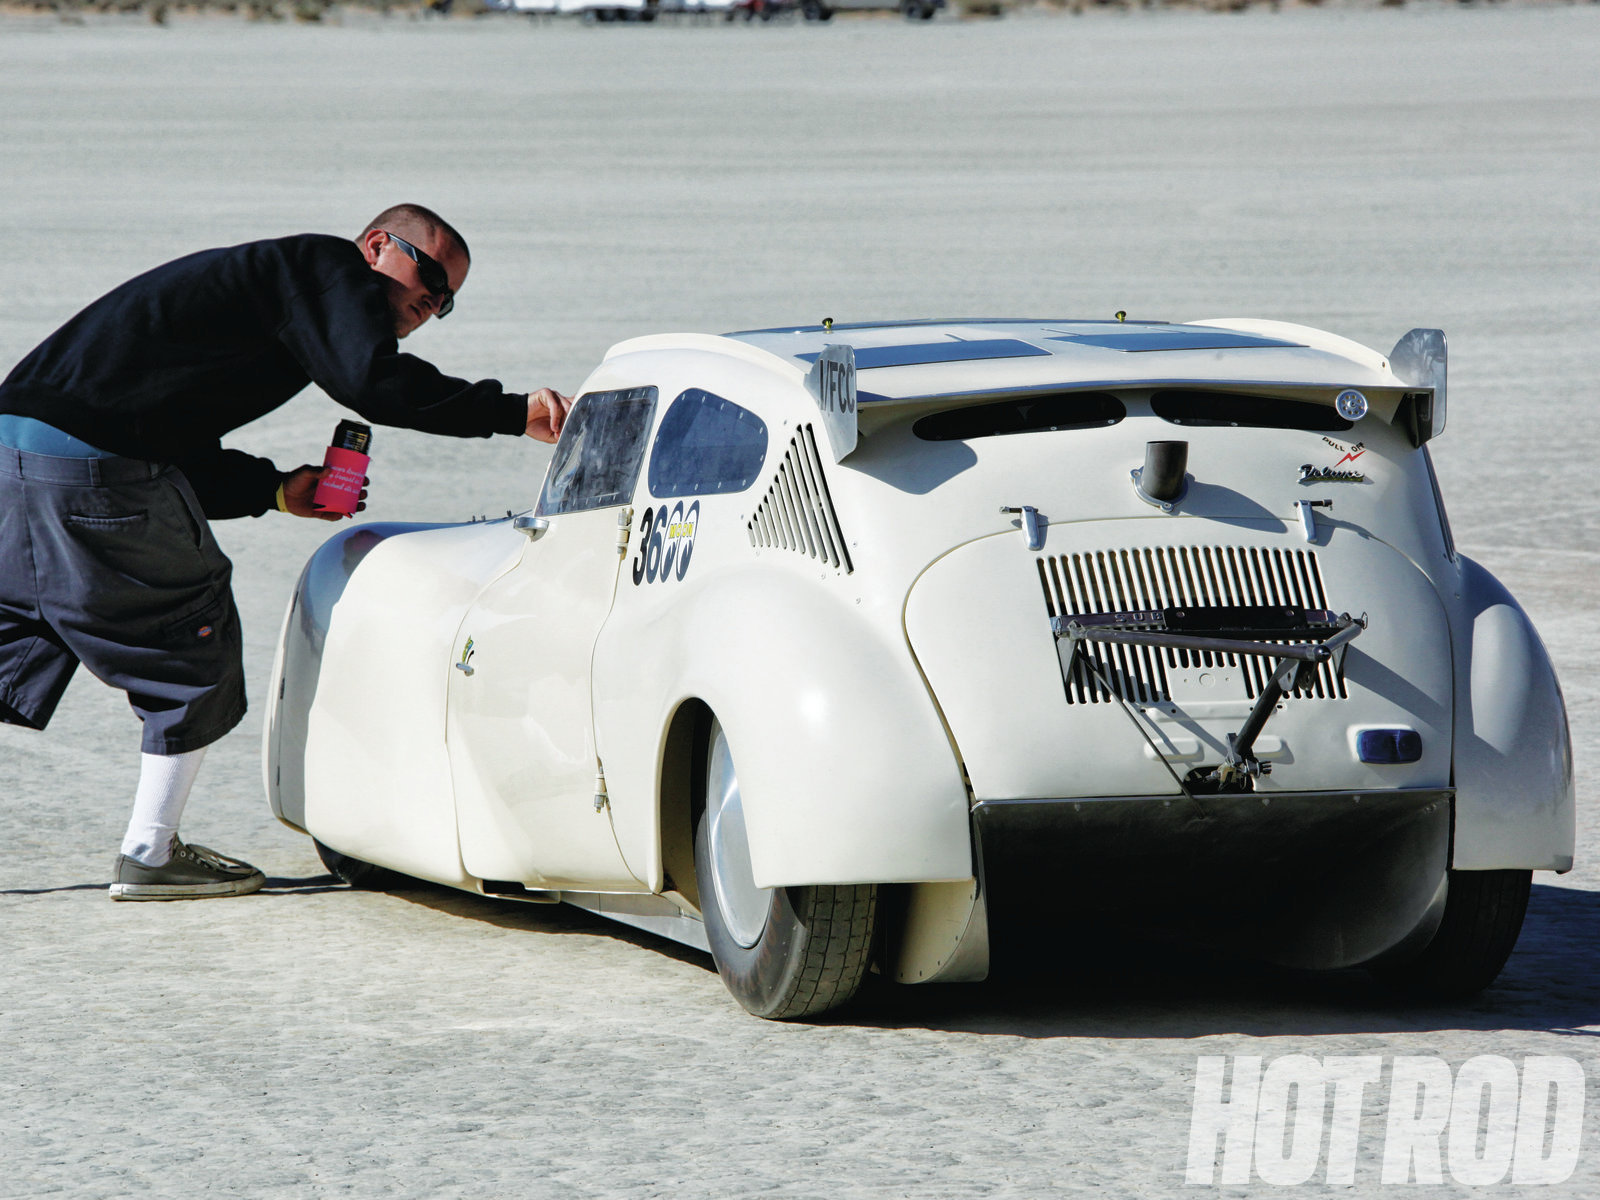 """Larry """"Axle"""" Foley works for Mike Kilger Metalworks, where he built this heavily chopped '69 Subaru 360 powered by a Kawasaki Ninja motorcycle 900cc, four-valve, water-cooled engine in the front. It uses a Toyota rear axle and a VW link-pin front suspension."""